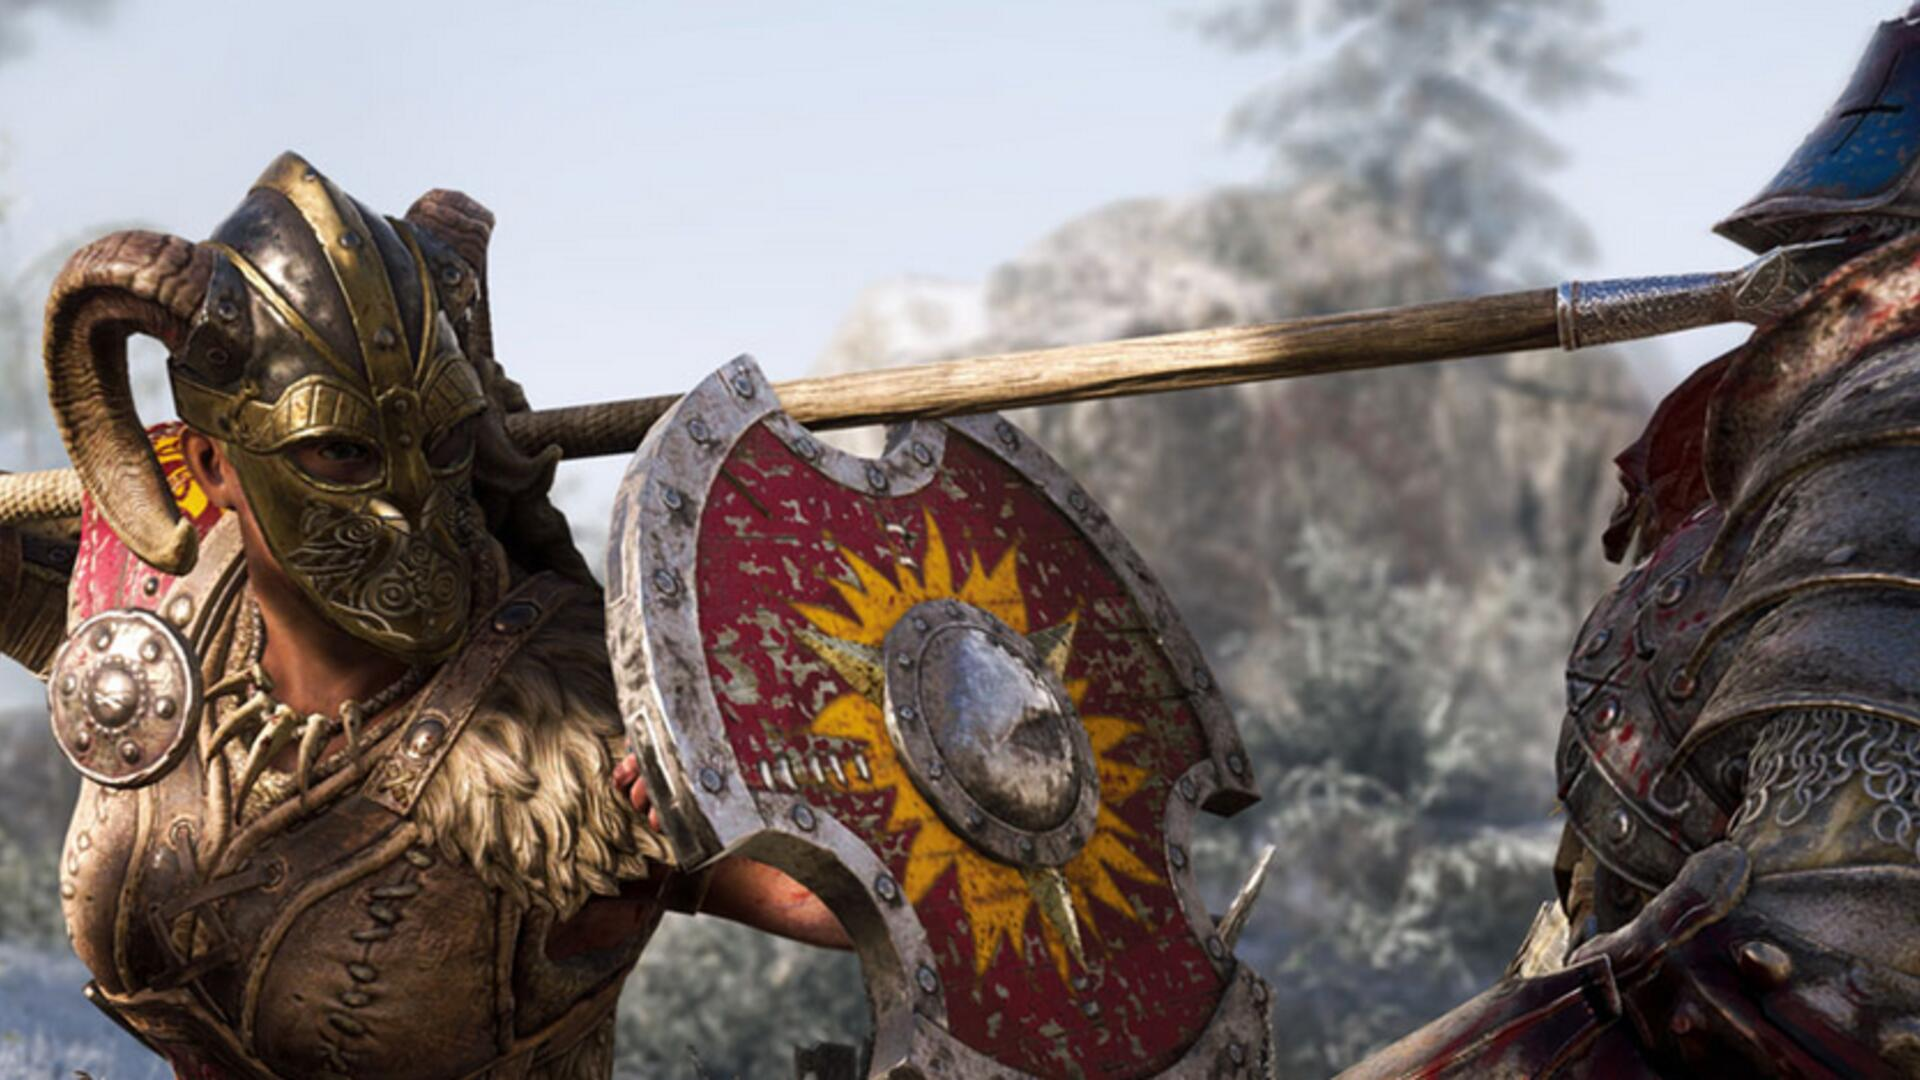 For Honor Replaces Controversial Groping Animation